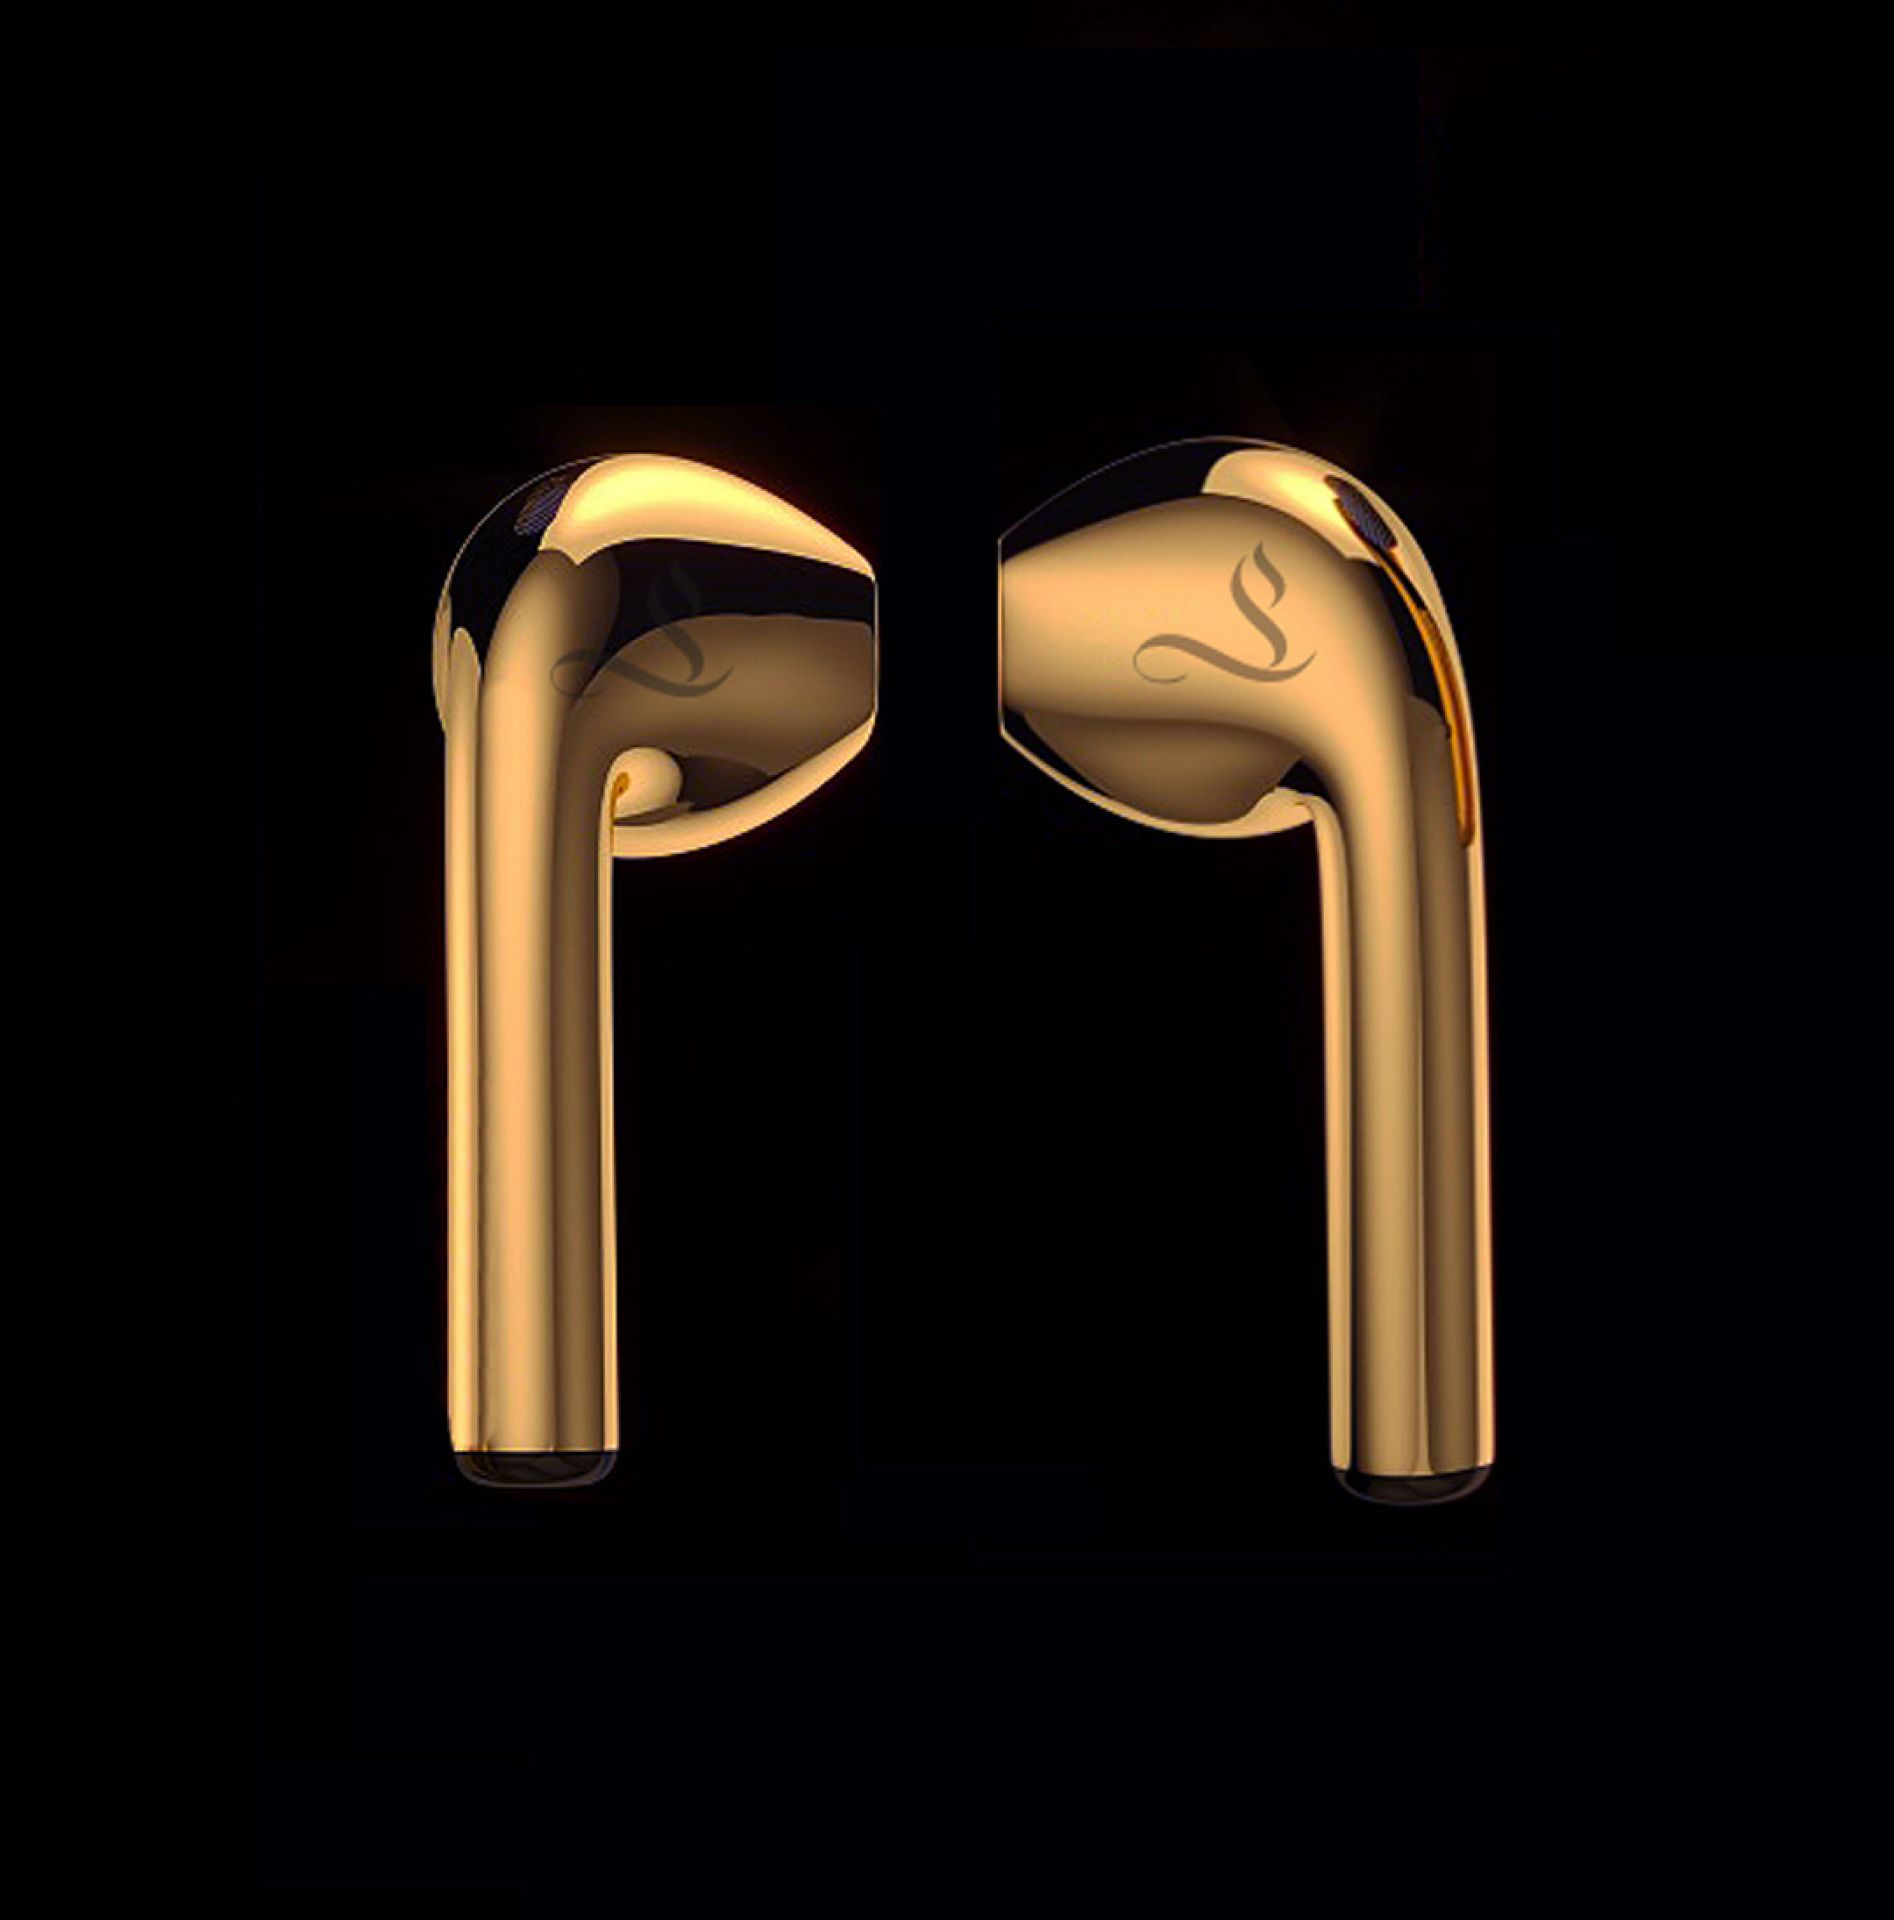 Solid 18k Gold Airpods second generation with bespoke engraving & 24k gold case